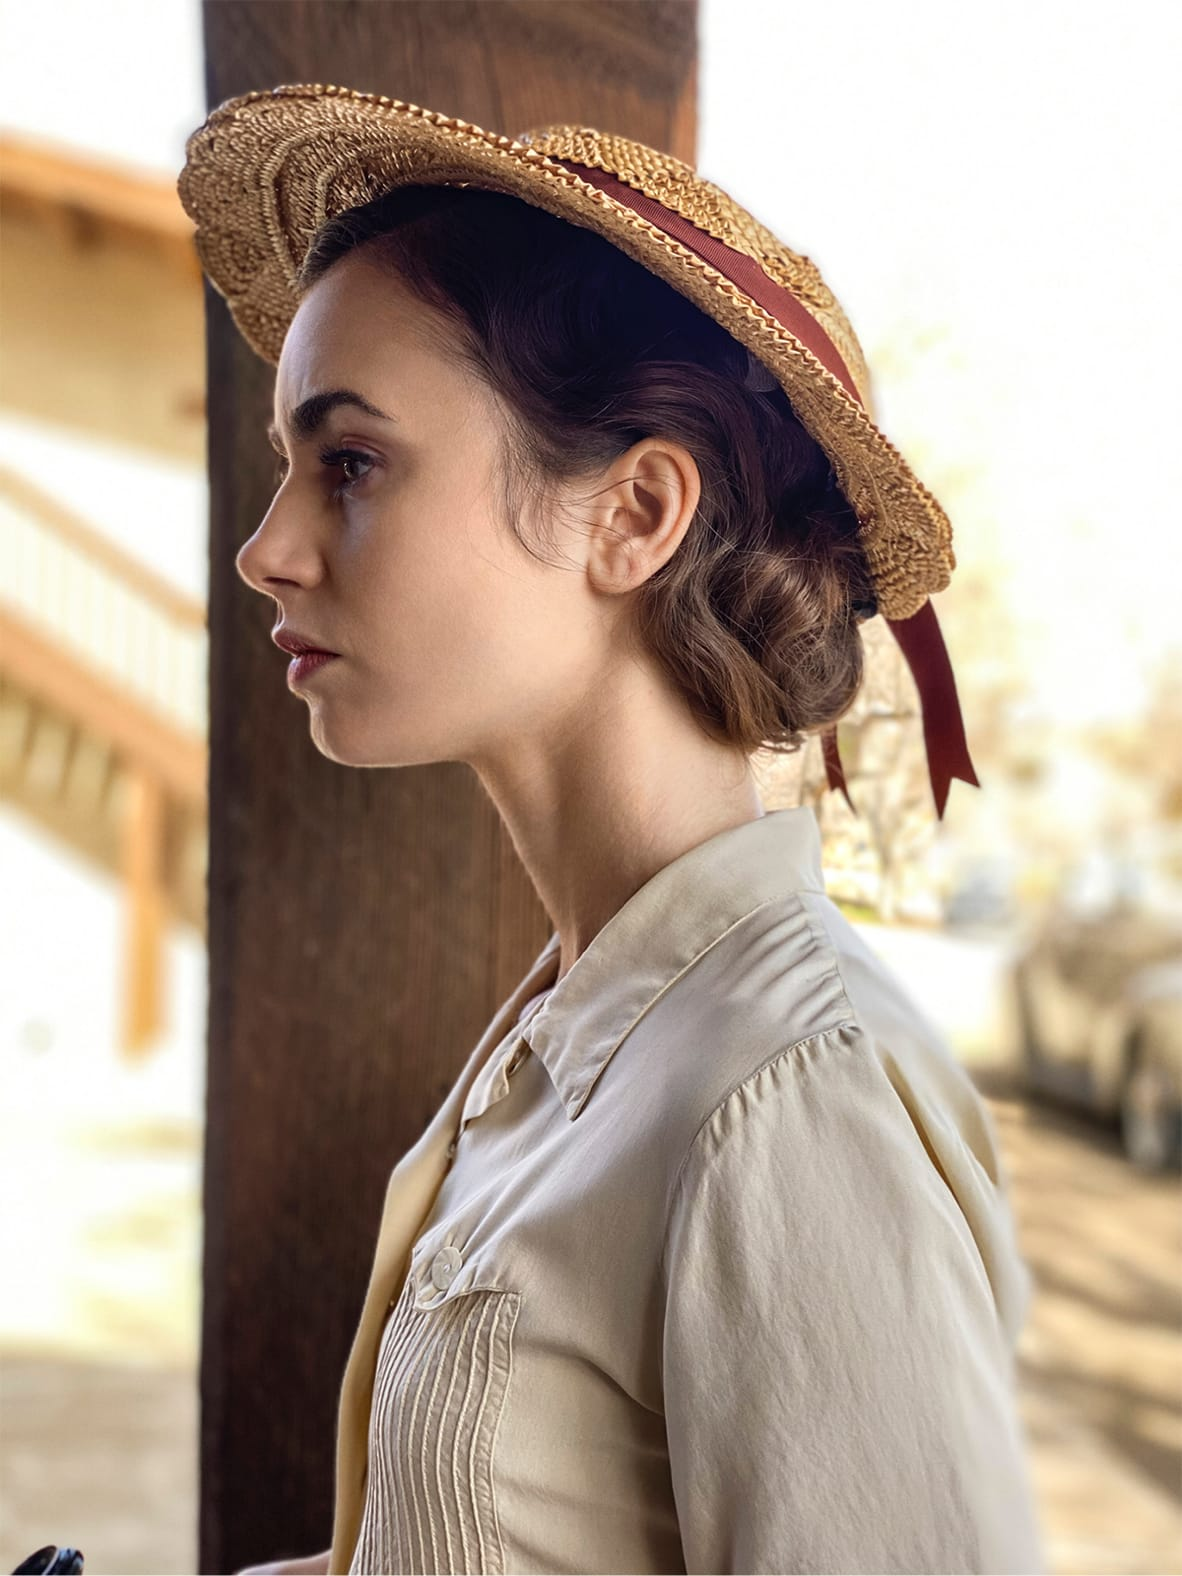 Lily Collins in character wearing a cream blouse and tan sunhat. She's pictured in the desert light, everything browns and yellows.